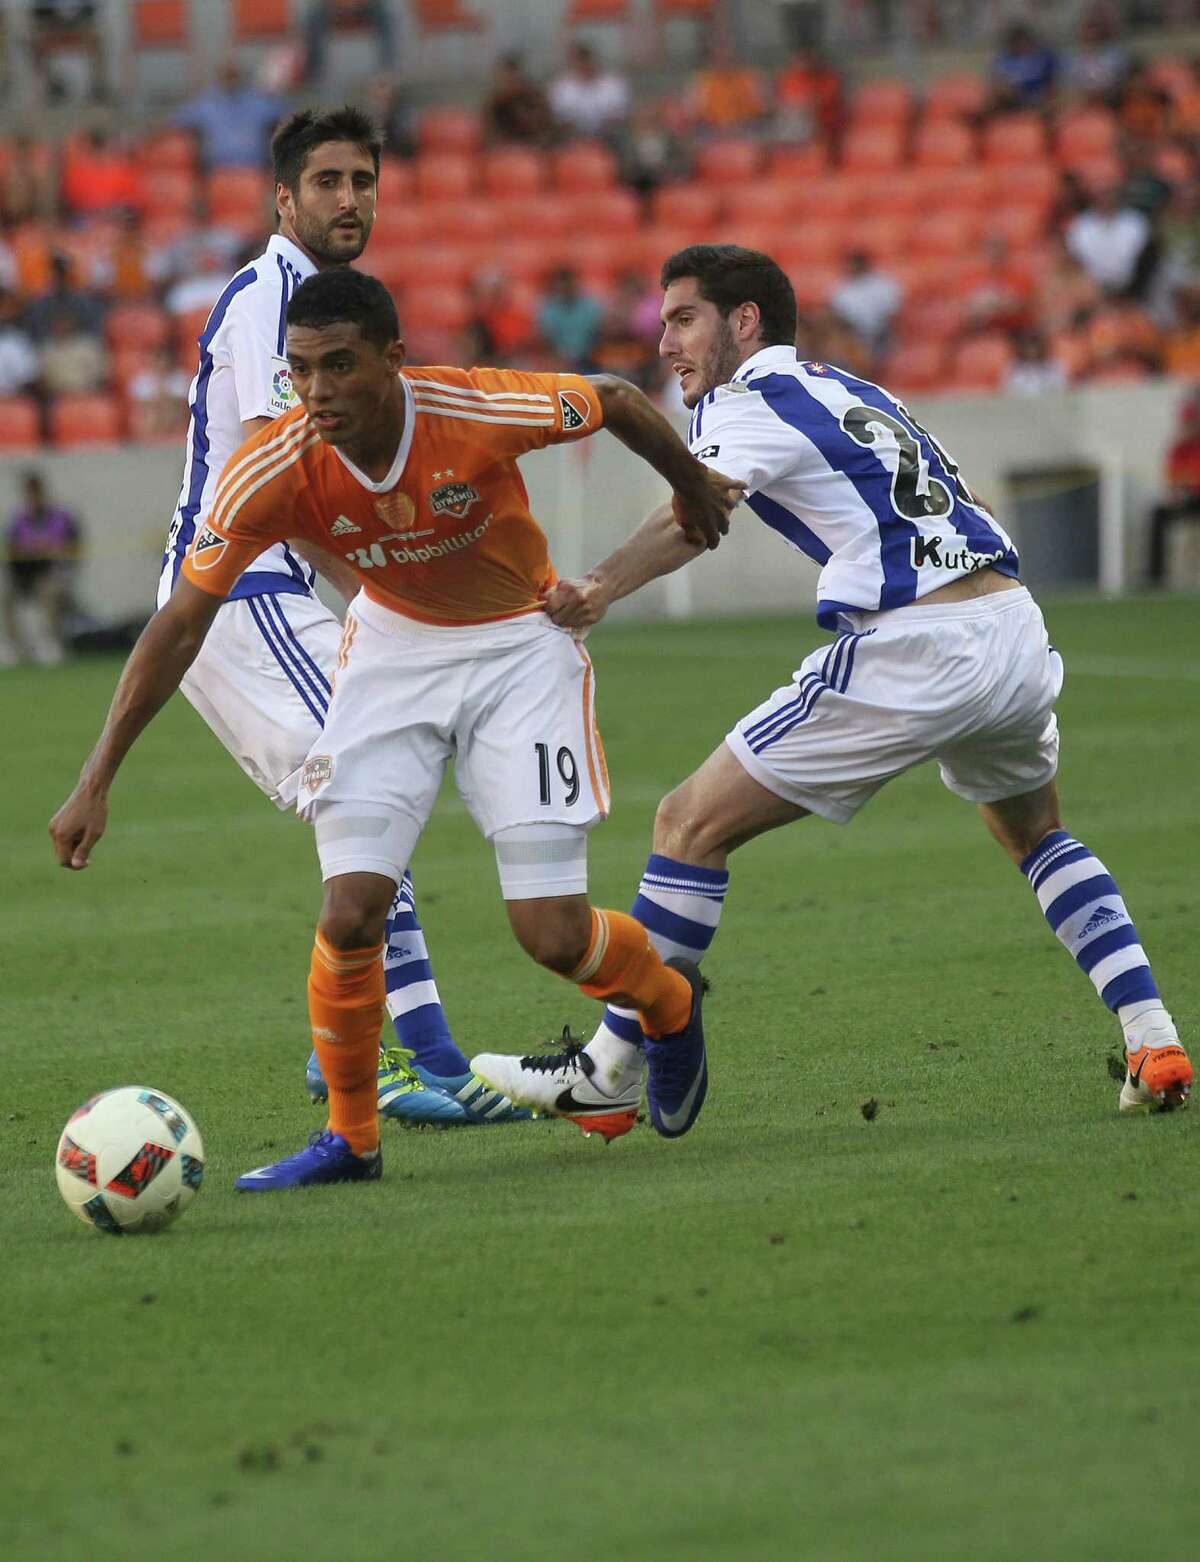 Real Sociedad defender Alberto De La Bella (24) holds onto Houston Dynamo forward Mauro Manotas (19) in the first half of the Charities Cup on Tuesday, May 24, 2016, in Houston.